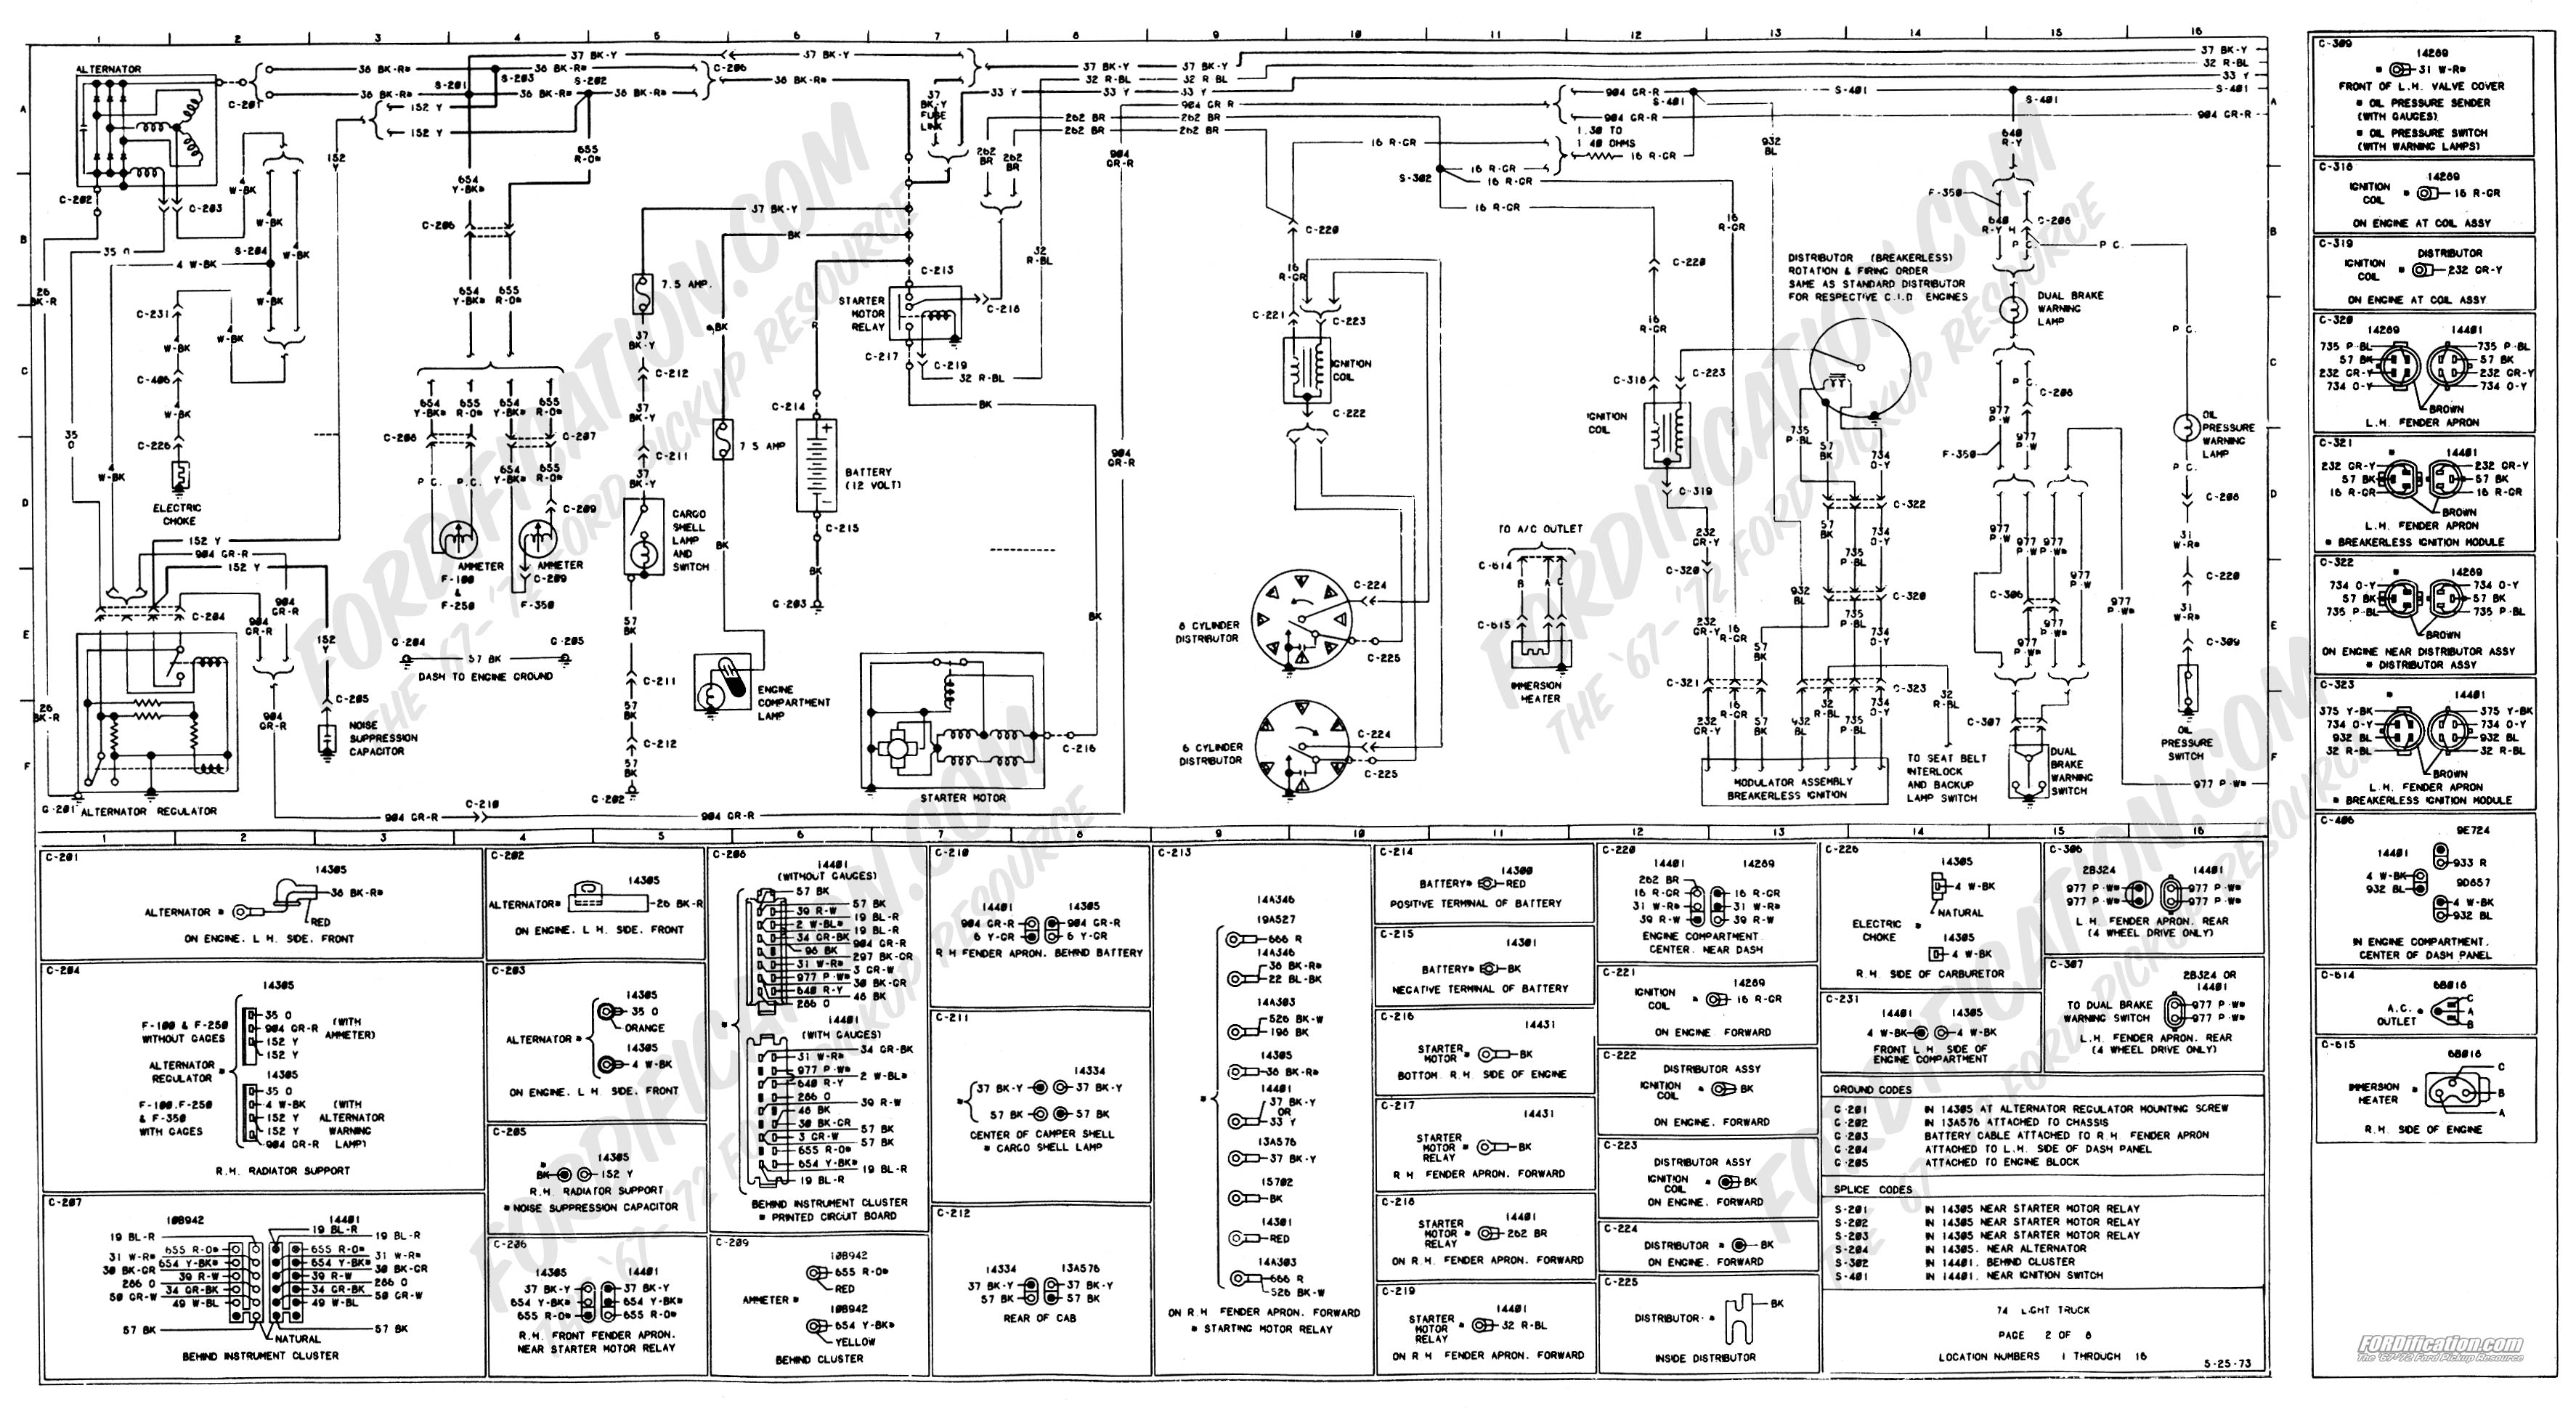 1973 Ford F250 Wiring Diagram - Wiring Diagram User  Ford F Wiring Diagram on 73 ford f250 steering, 73 ford f250 air conditioning, 73 dodge charger wiring diagram,